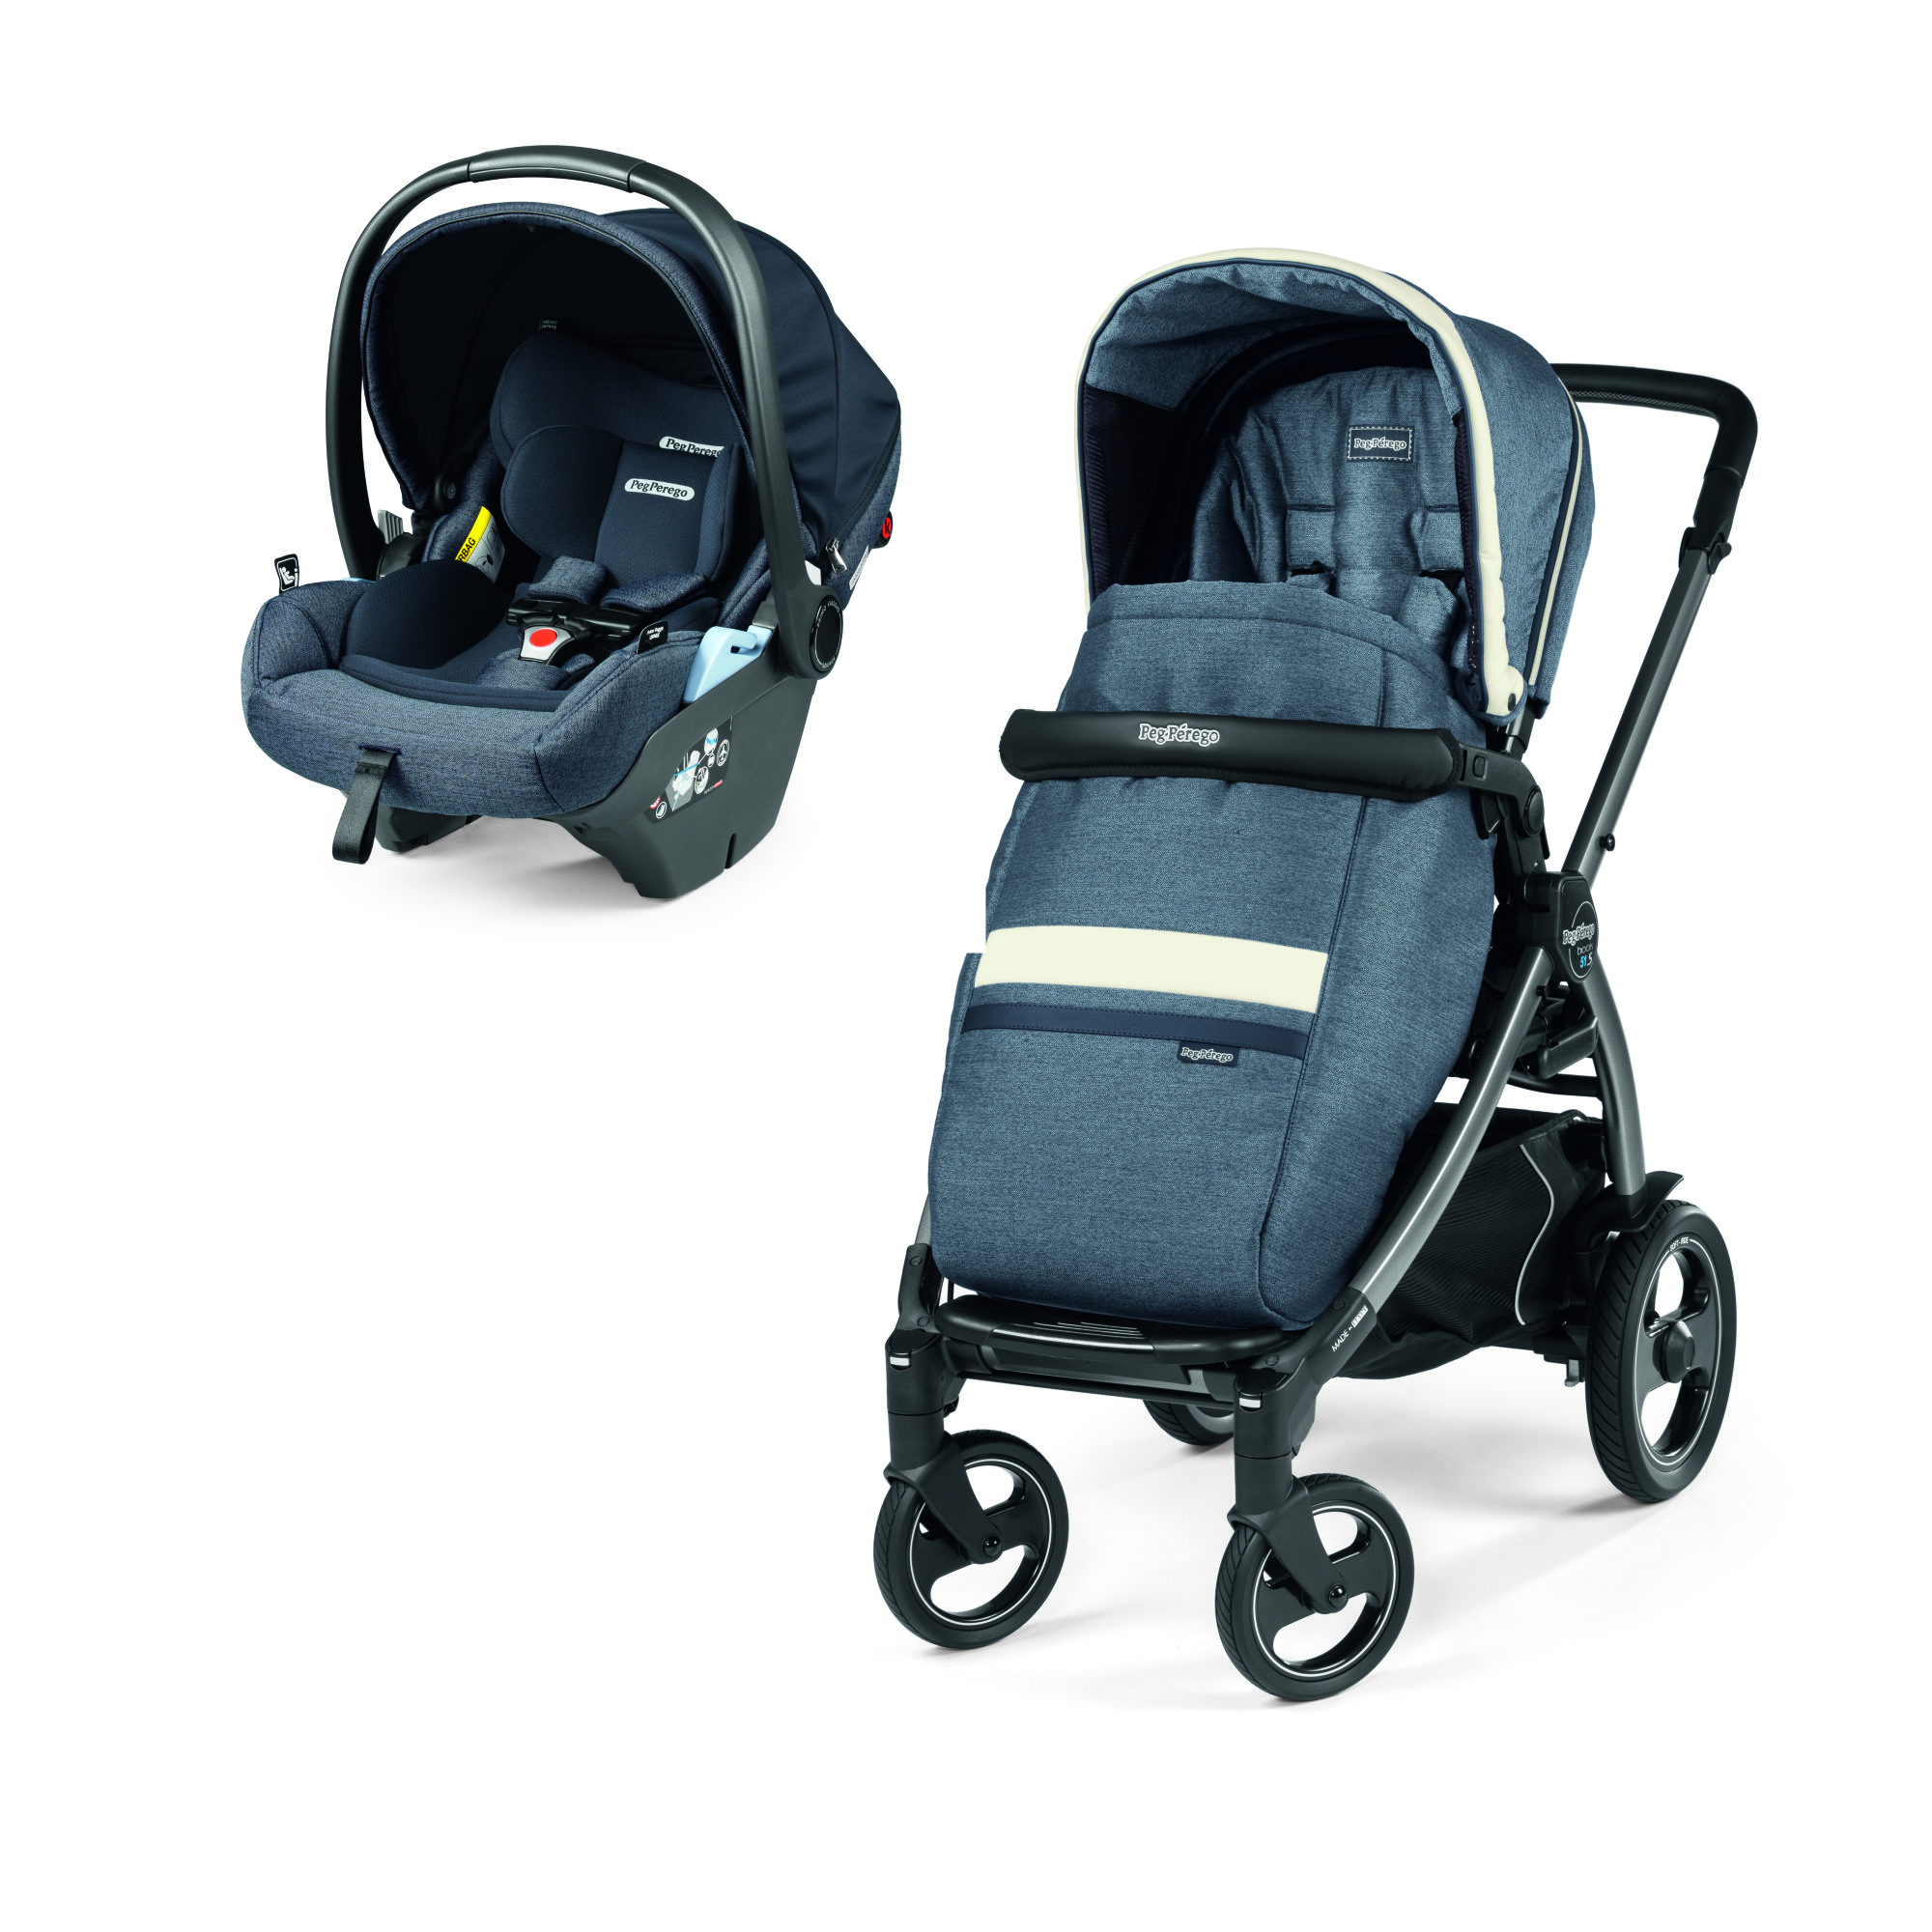 Carucior 2 in 1 Peg Perego, Book 51 S Titania, Lounge, Luxe Mirage